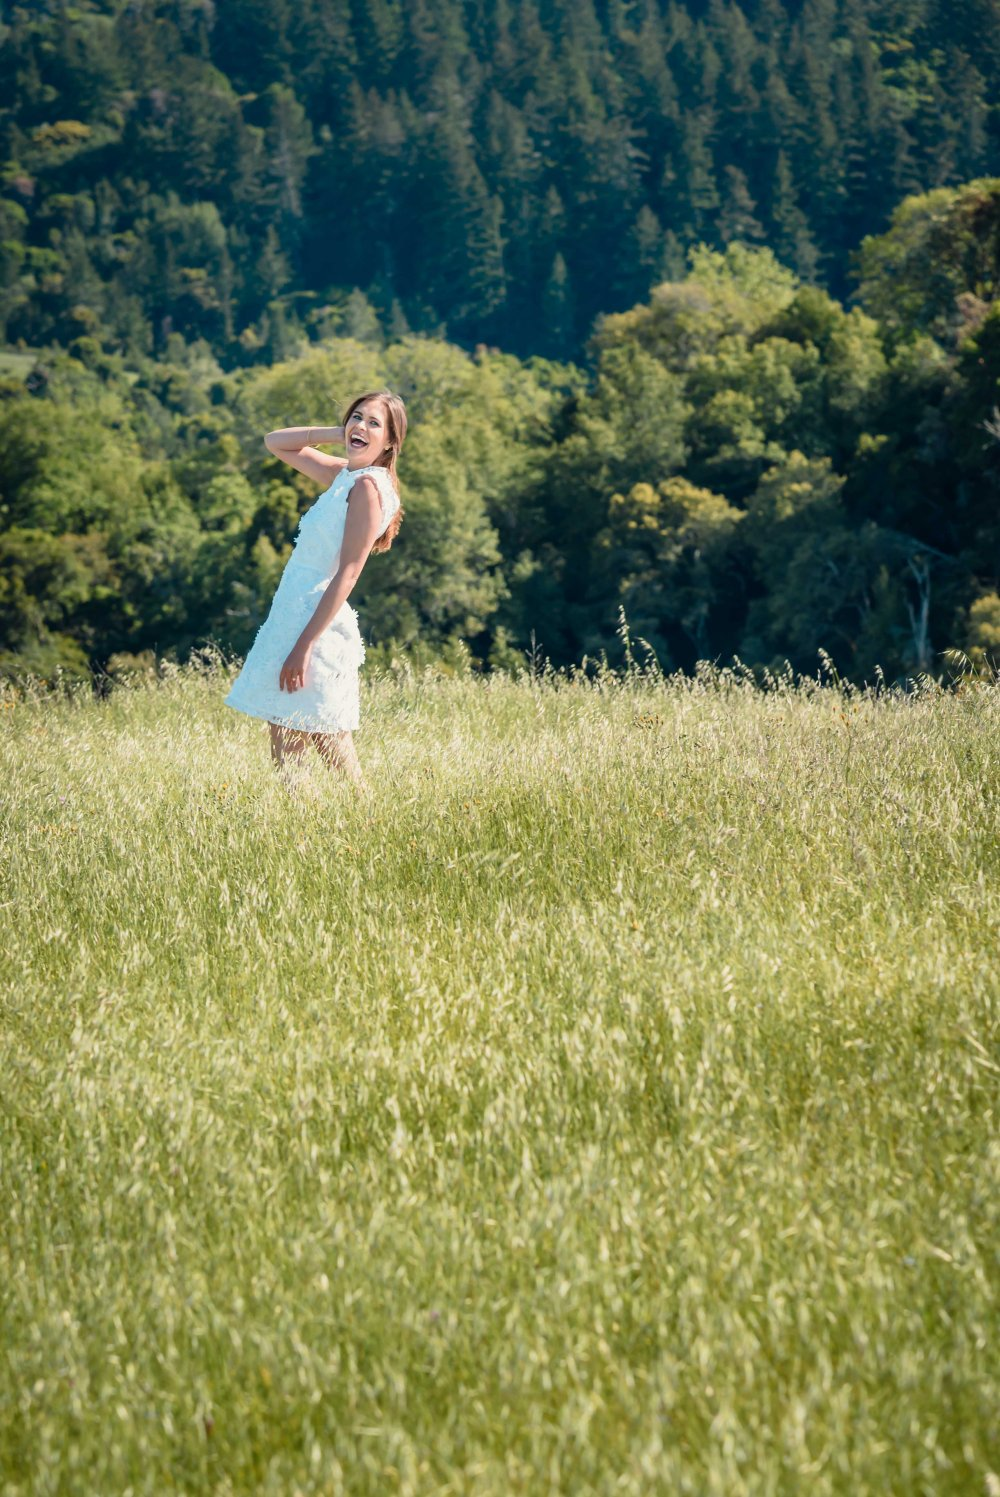 bay area wilderness couples engagement photography photographer mountains white dress in distance